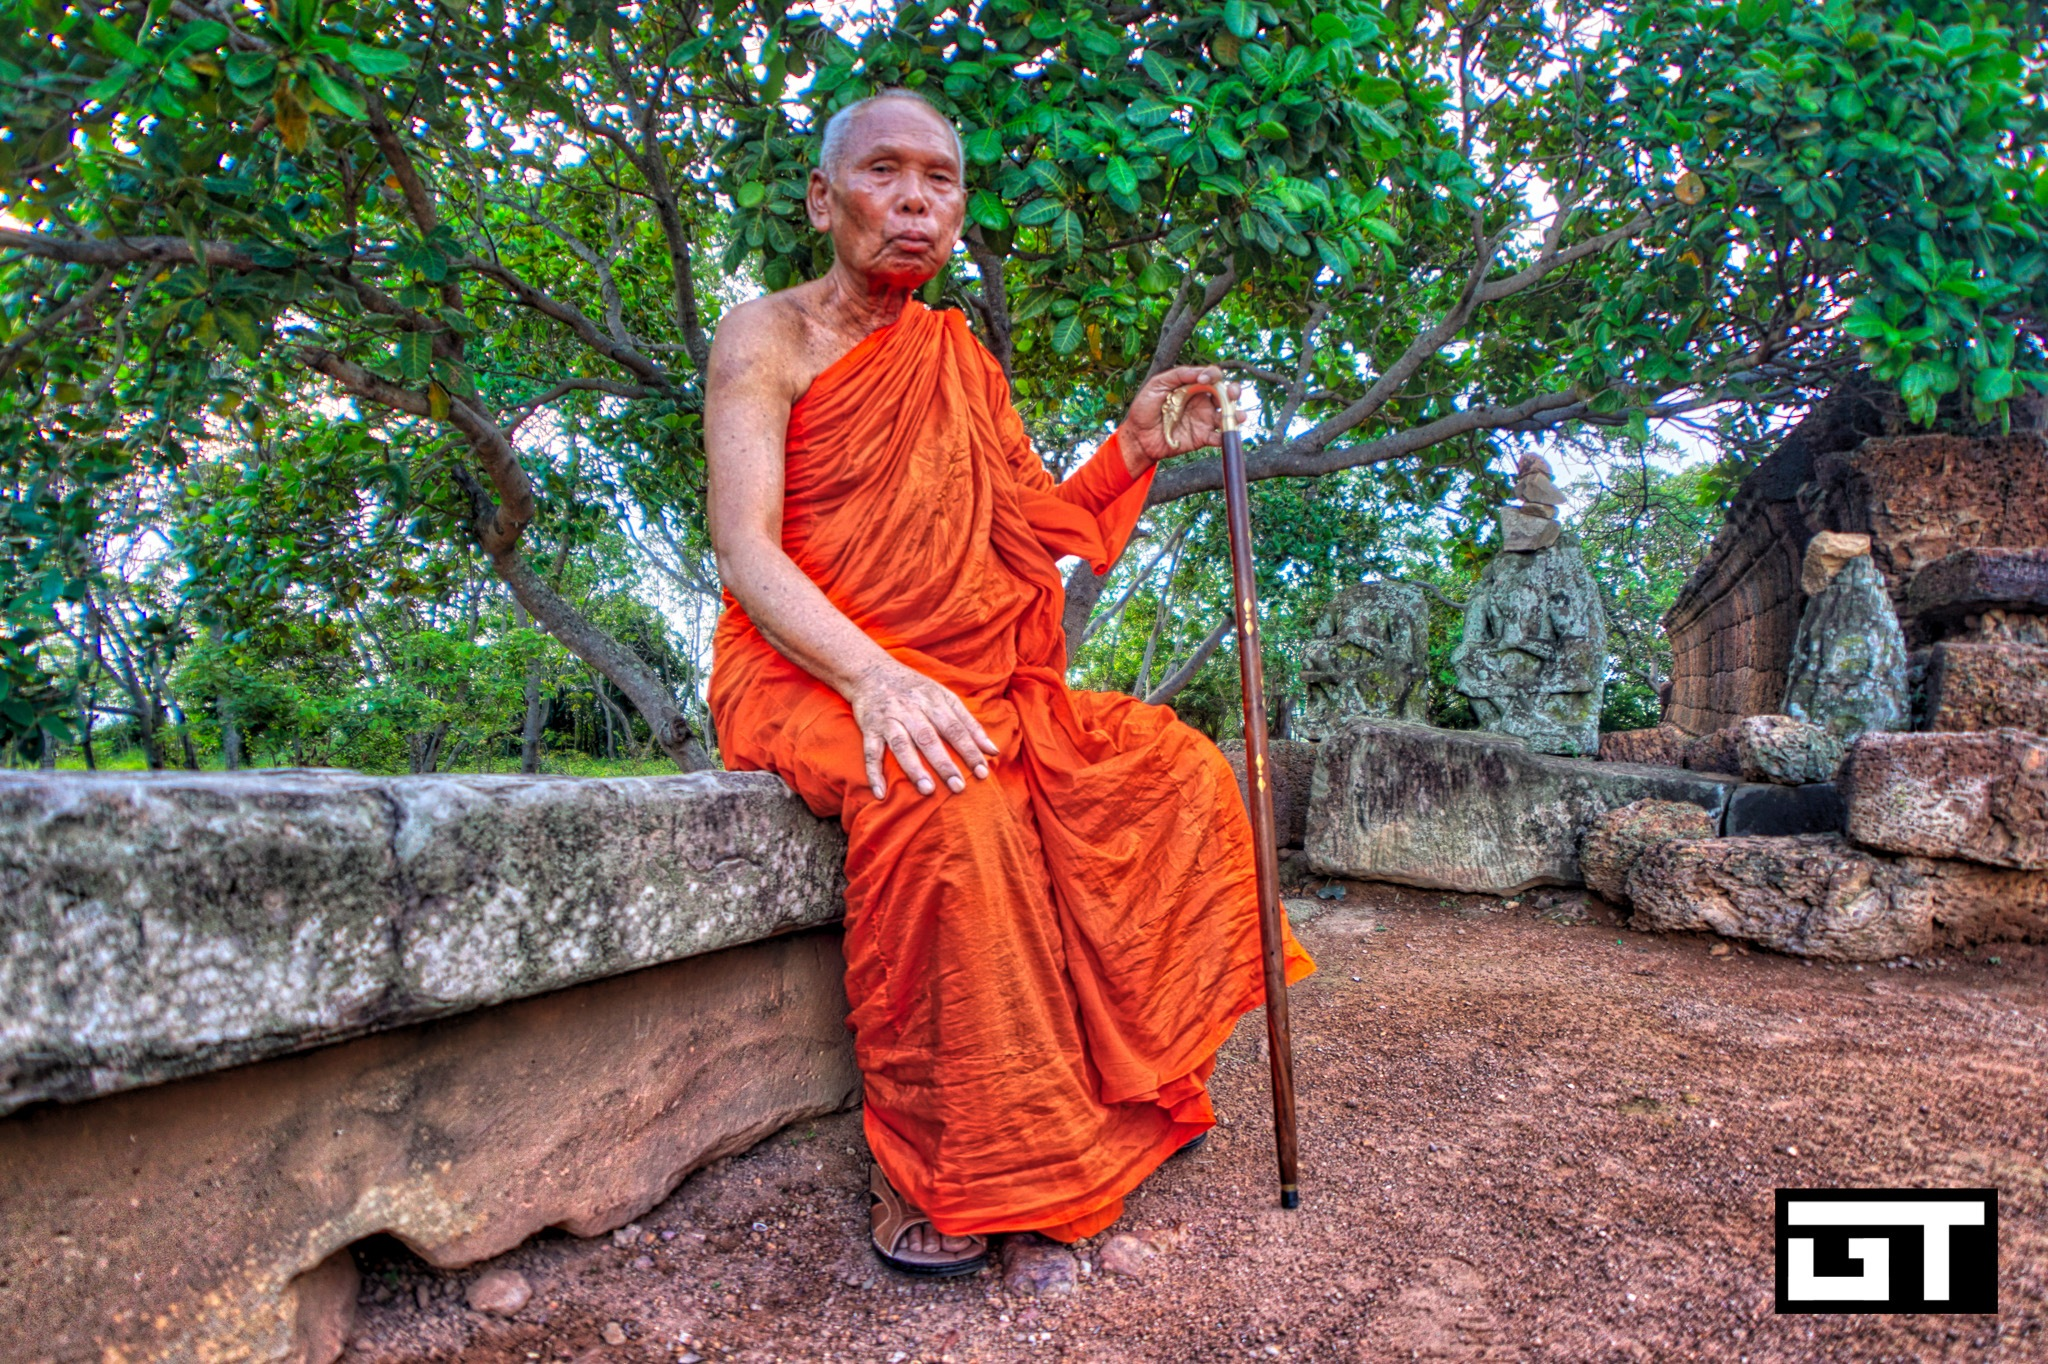 Monk from Thailand visiting Cambodia by Gabe Taviano